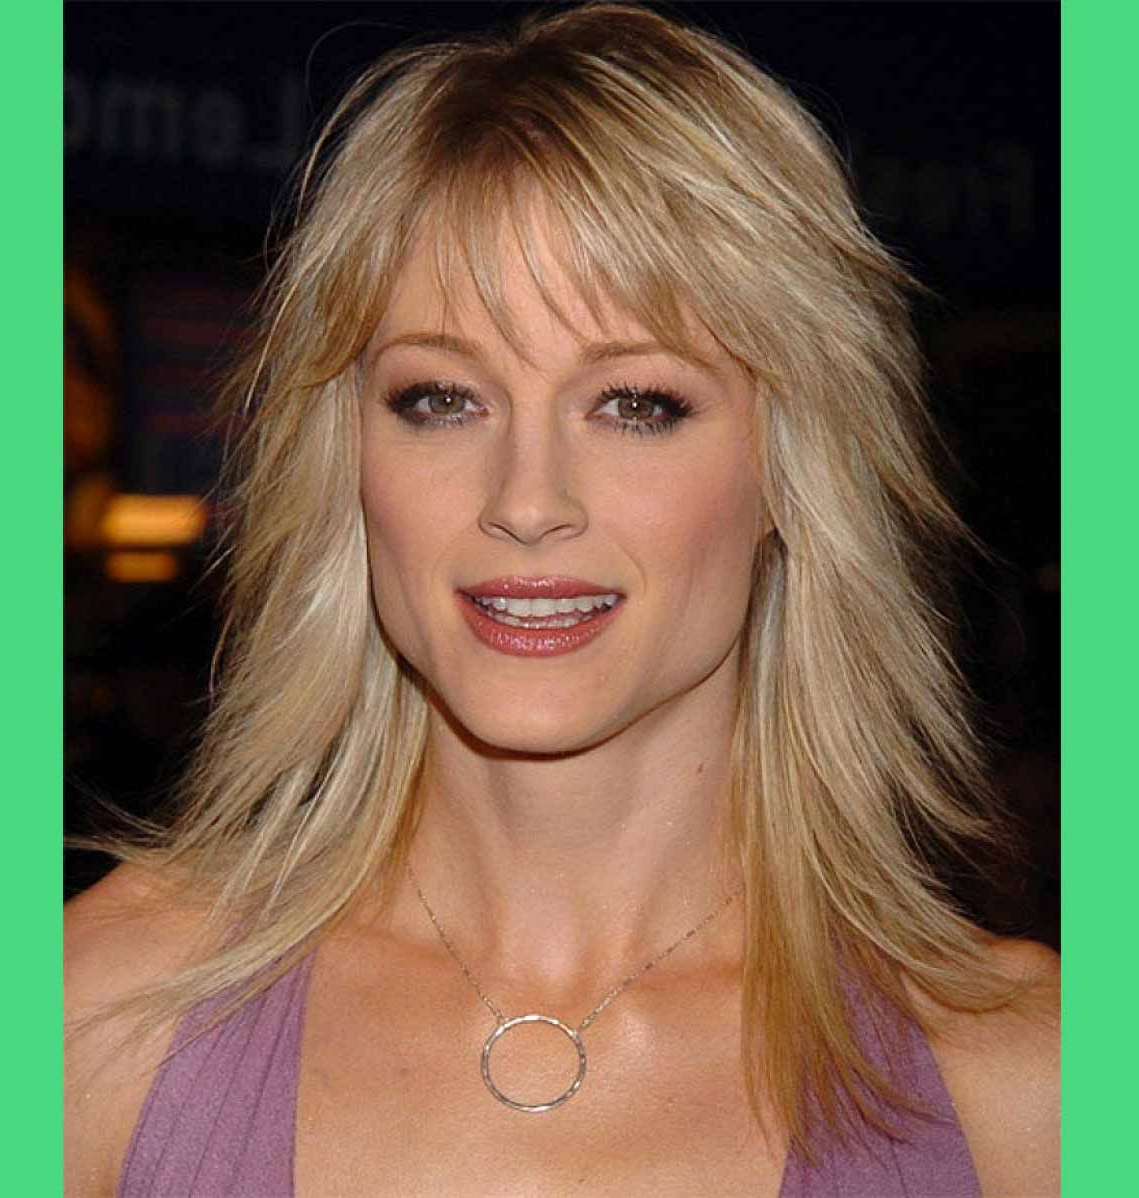 Famous Medium Hairstyles With Layers For Fine Hair With Regard To Medium Length Blonde Hairstyles For Thin Fine Hair With Side Bangs (View 5 of 20)